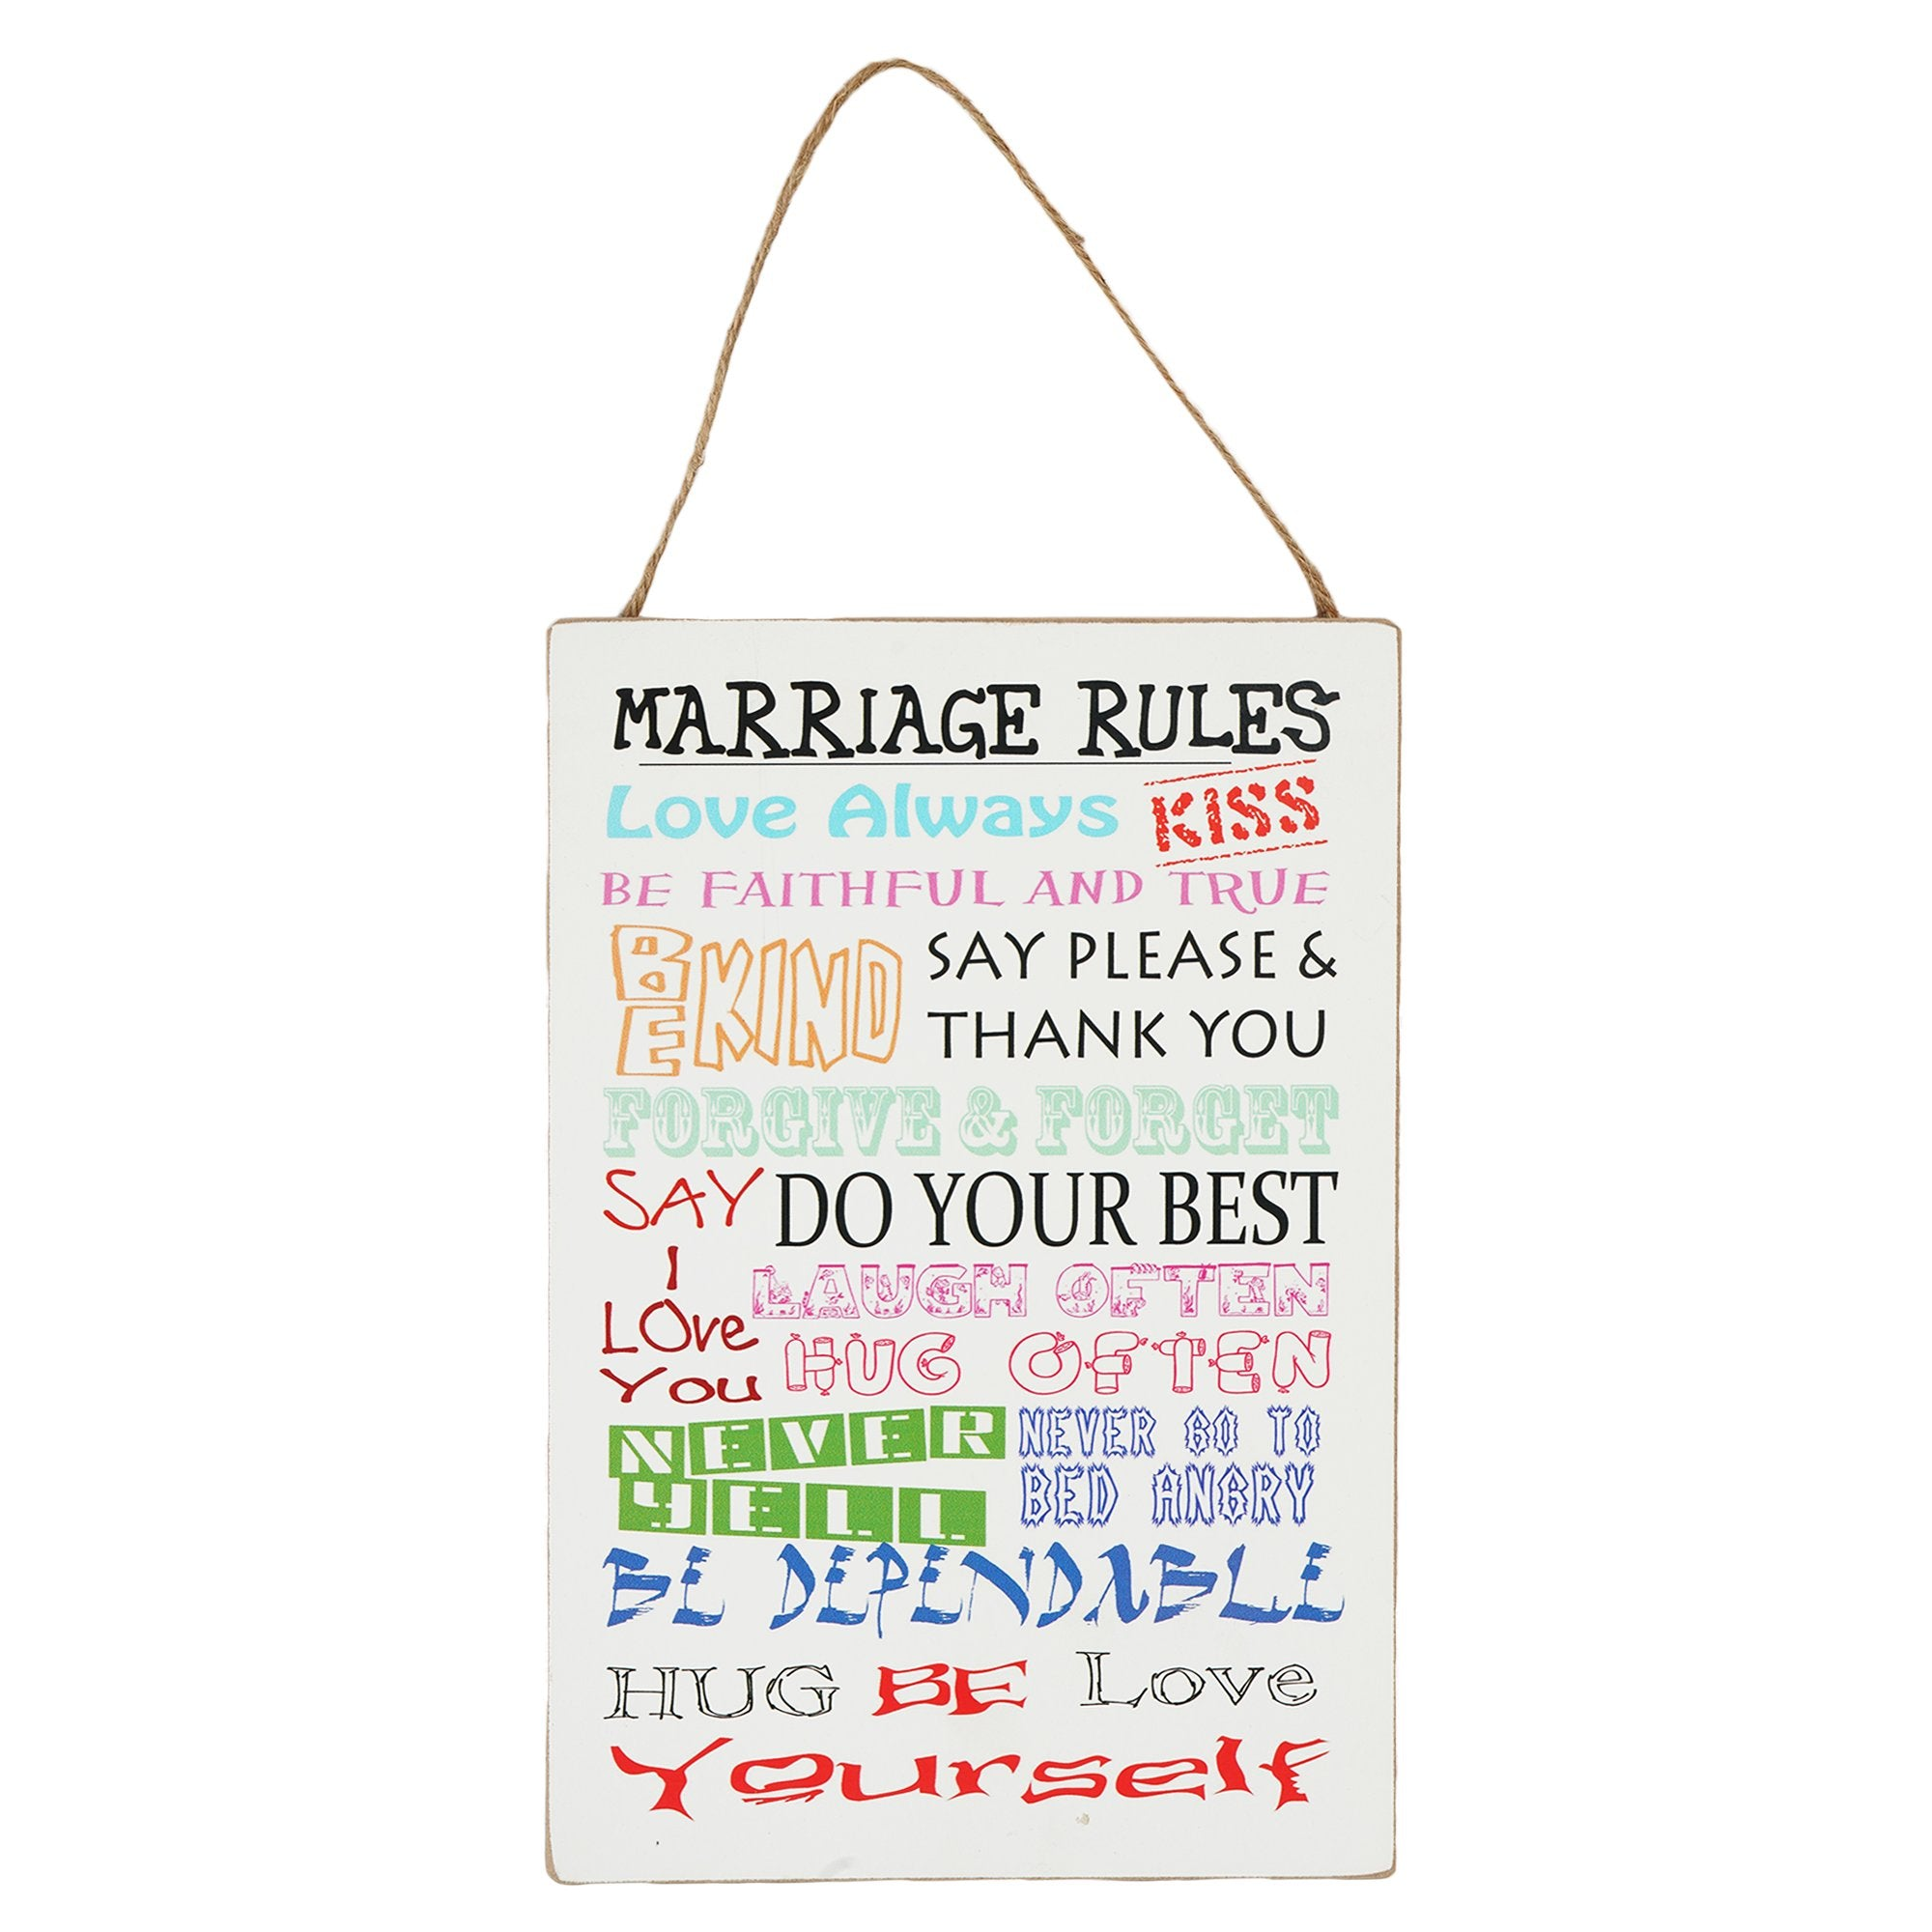 Marriage Rules Wall Plaque